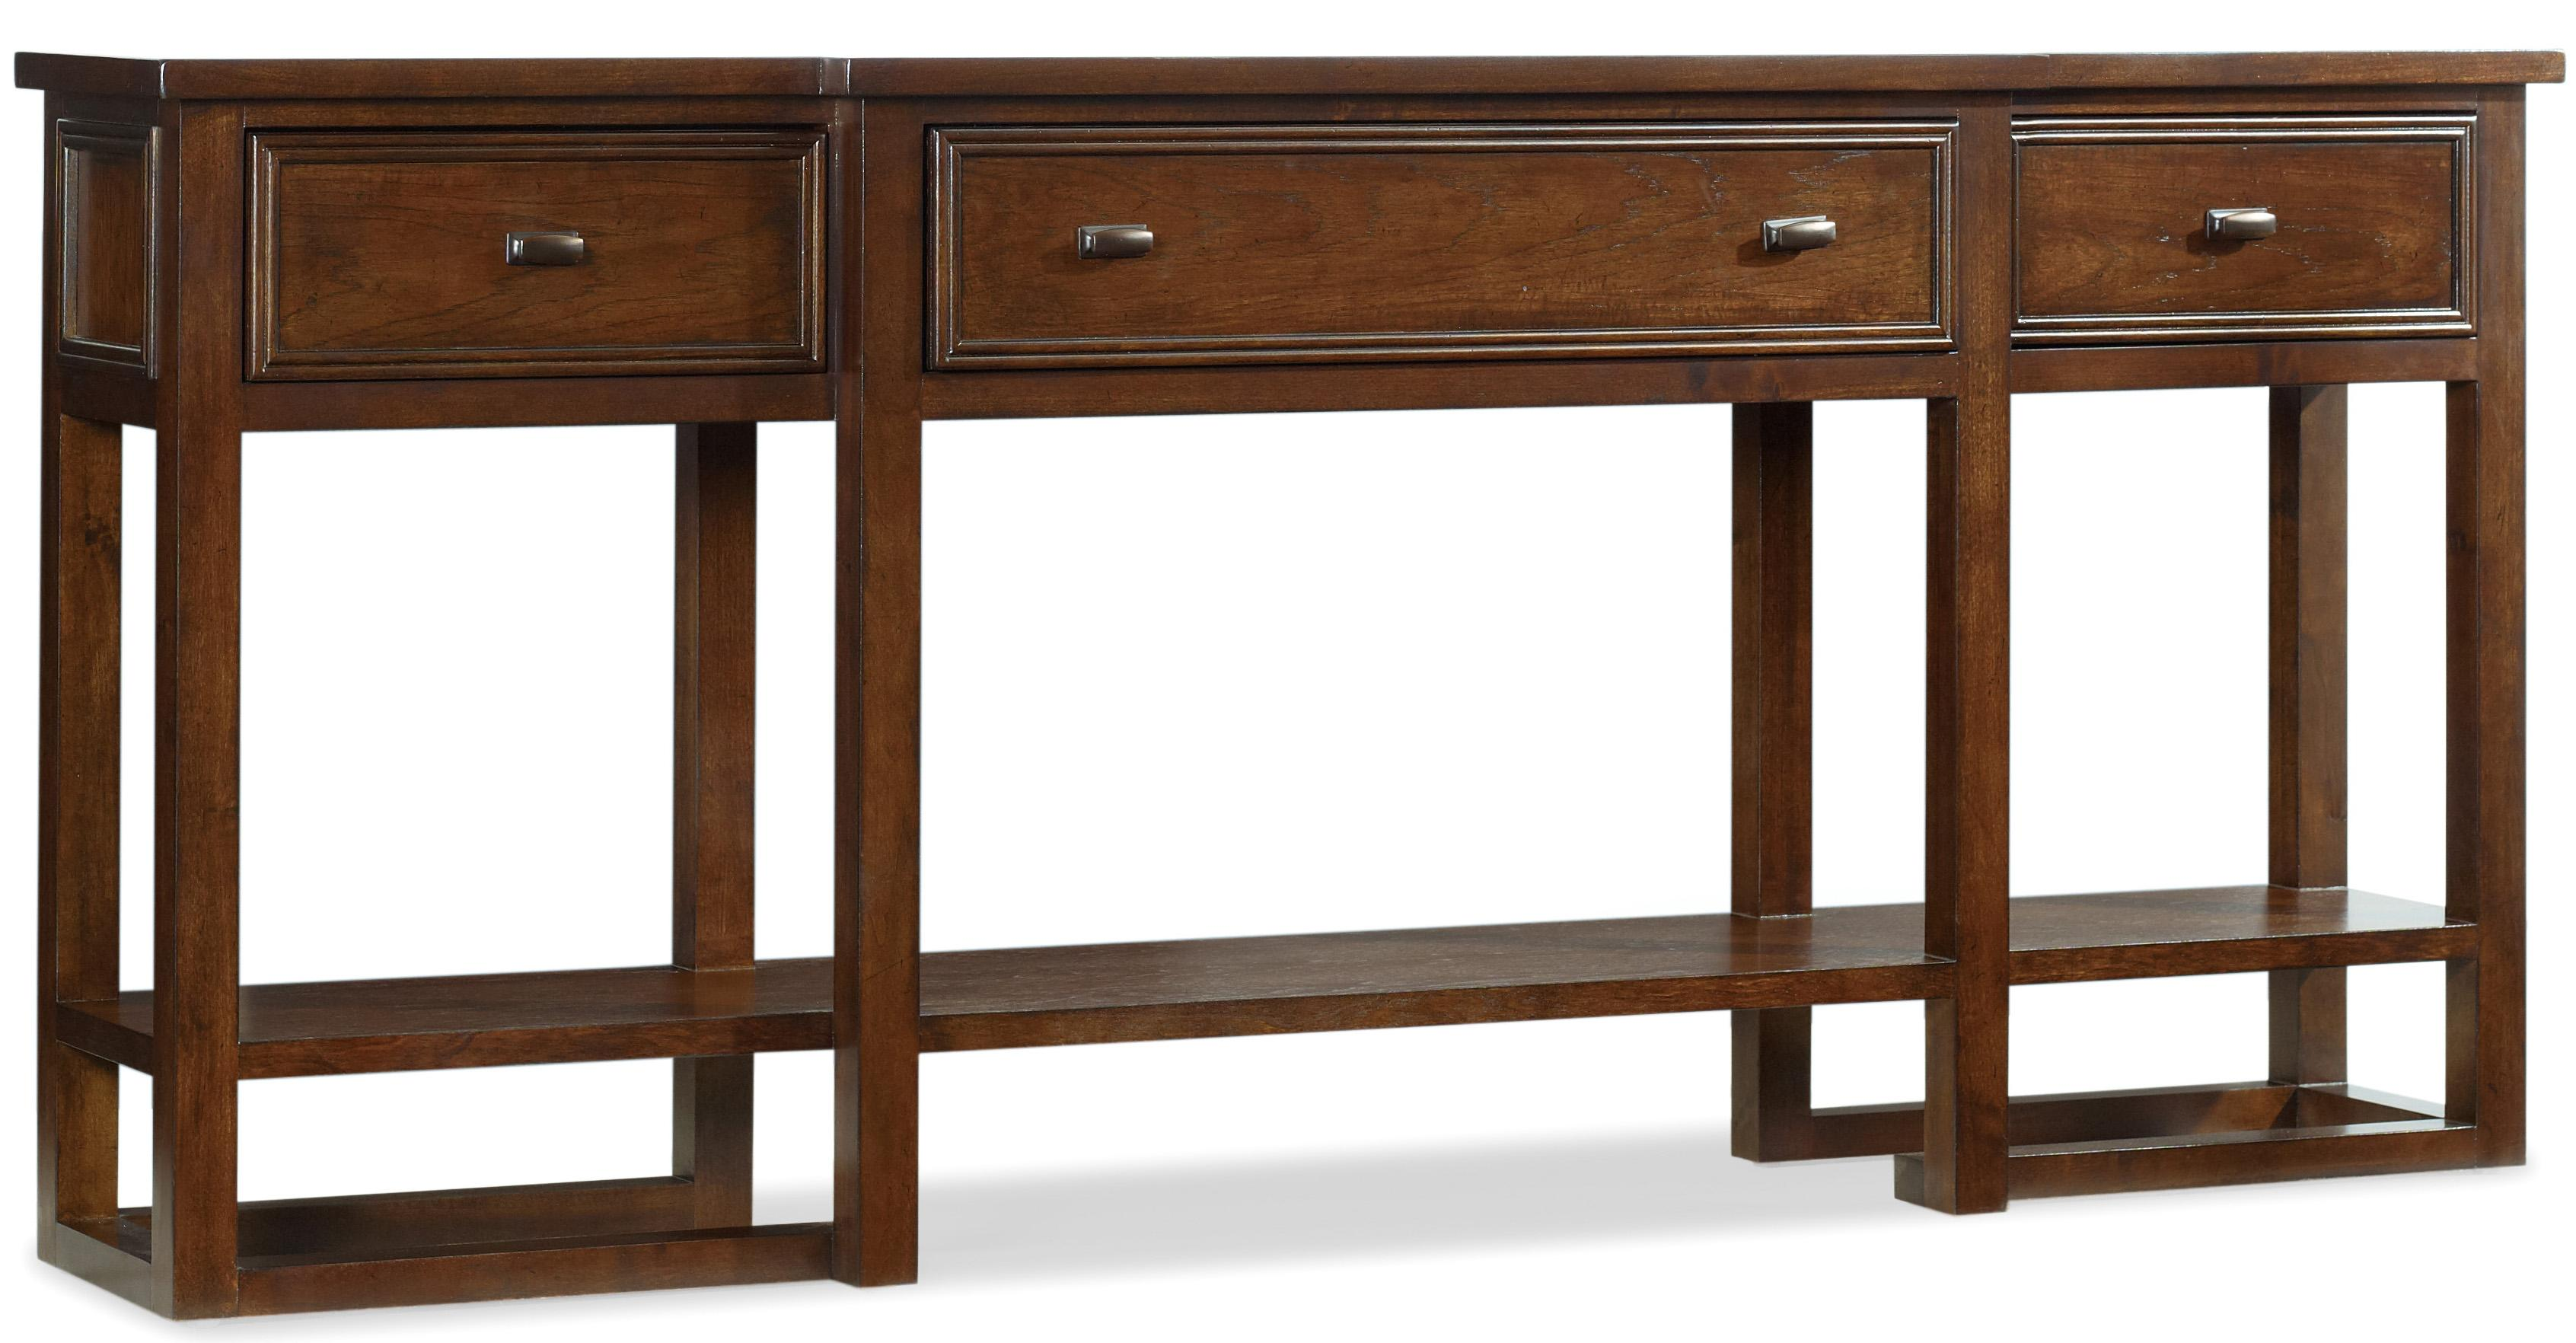 Hooker Furniture Lorimer Sofa Table - Item Number: 5065-80151